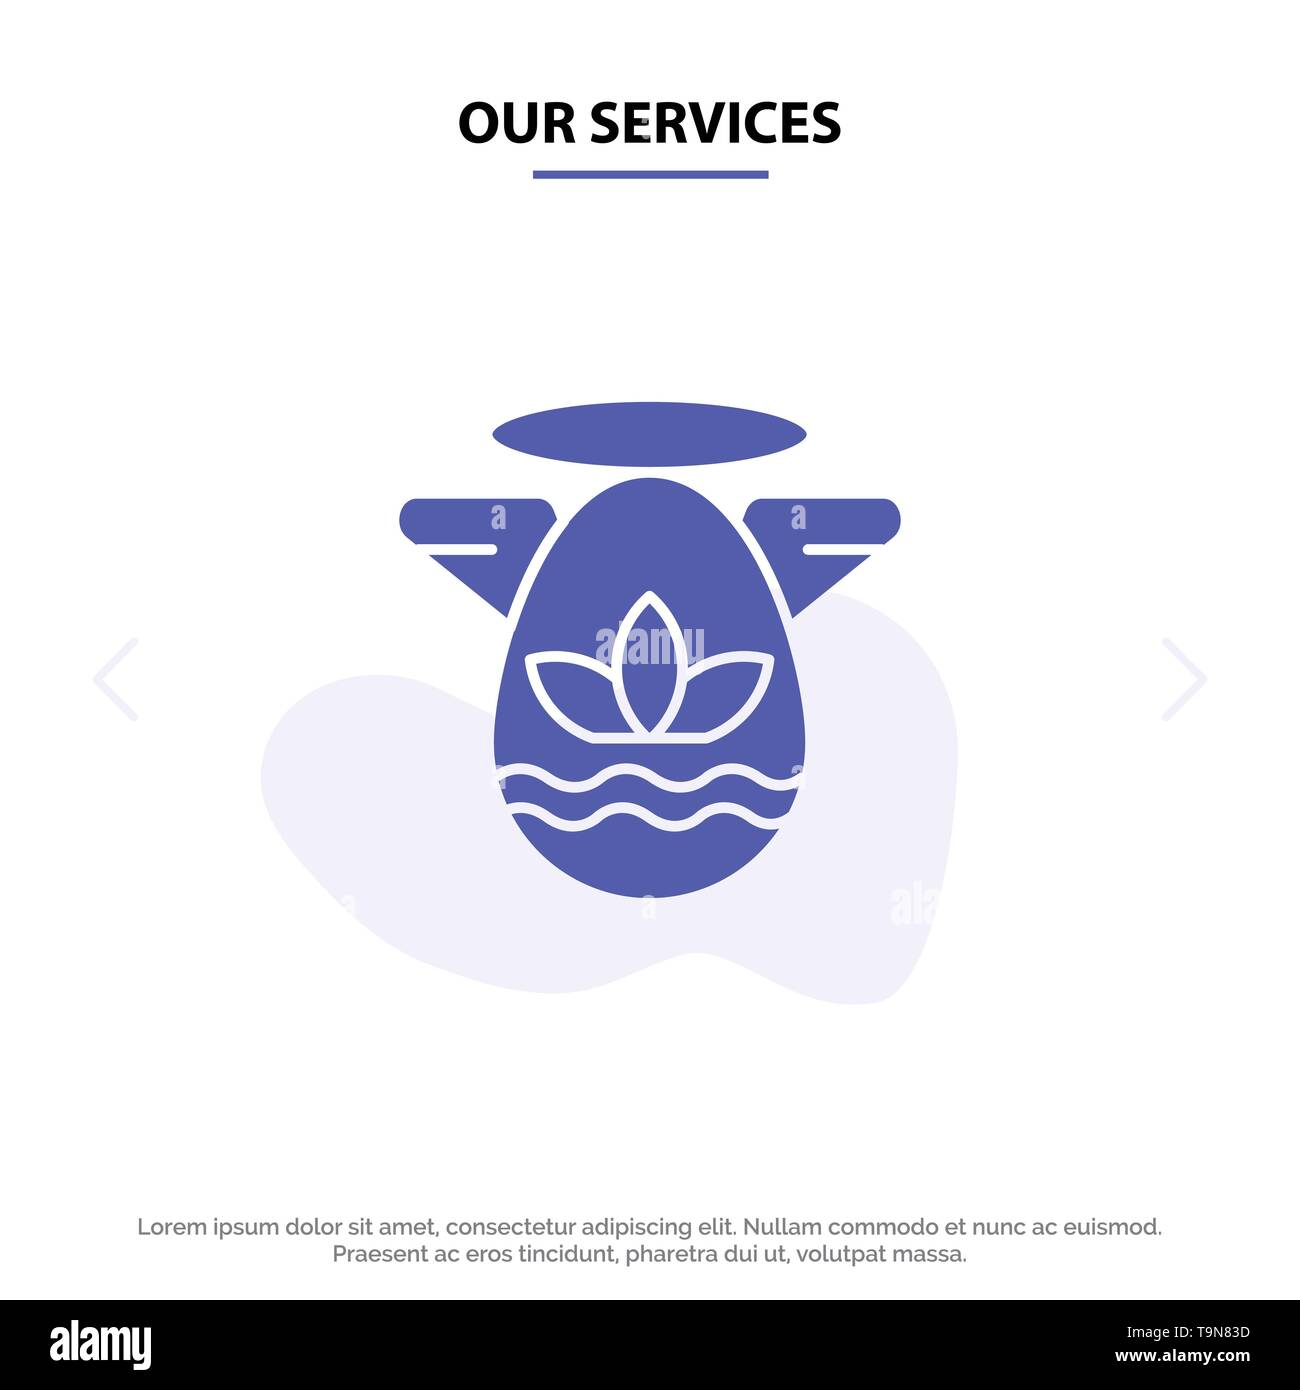 Our Services Angle, Celebration, Easter, Protractor Solid Glyph Icon Web card Template - Stock Image